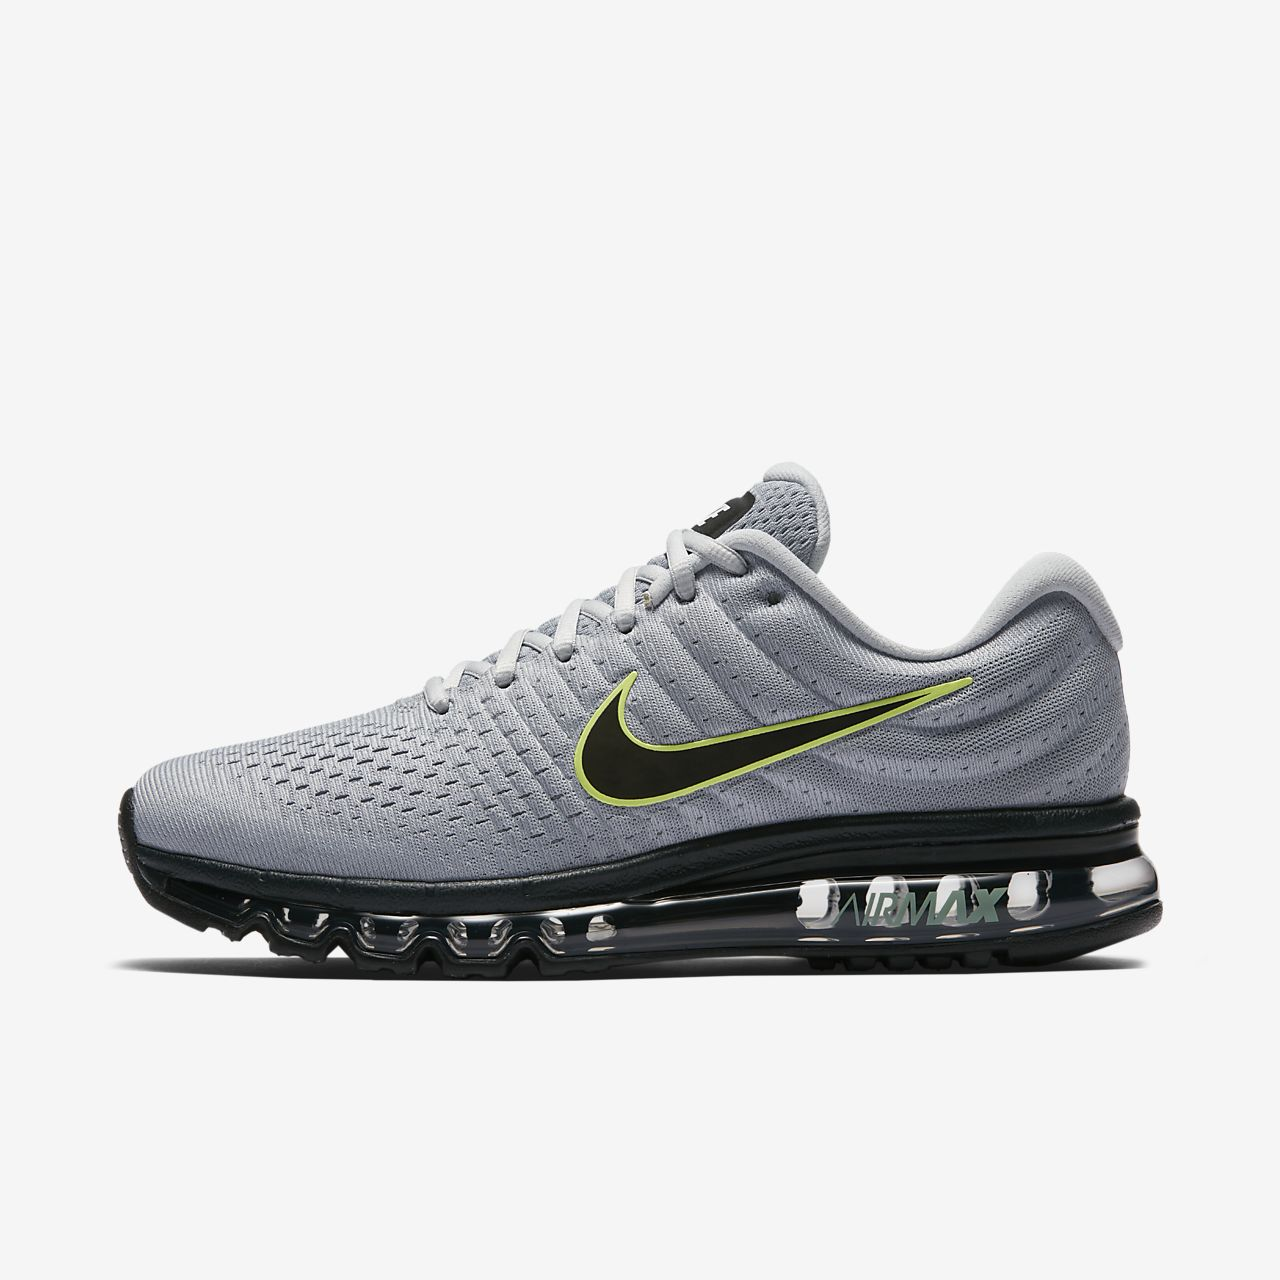 Nike Air Max 2016 Made In China,Nike Air Max 90 China Free